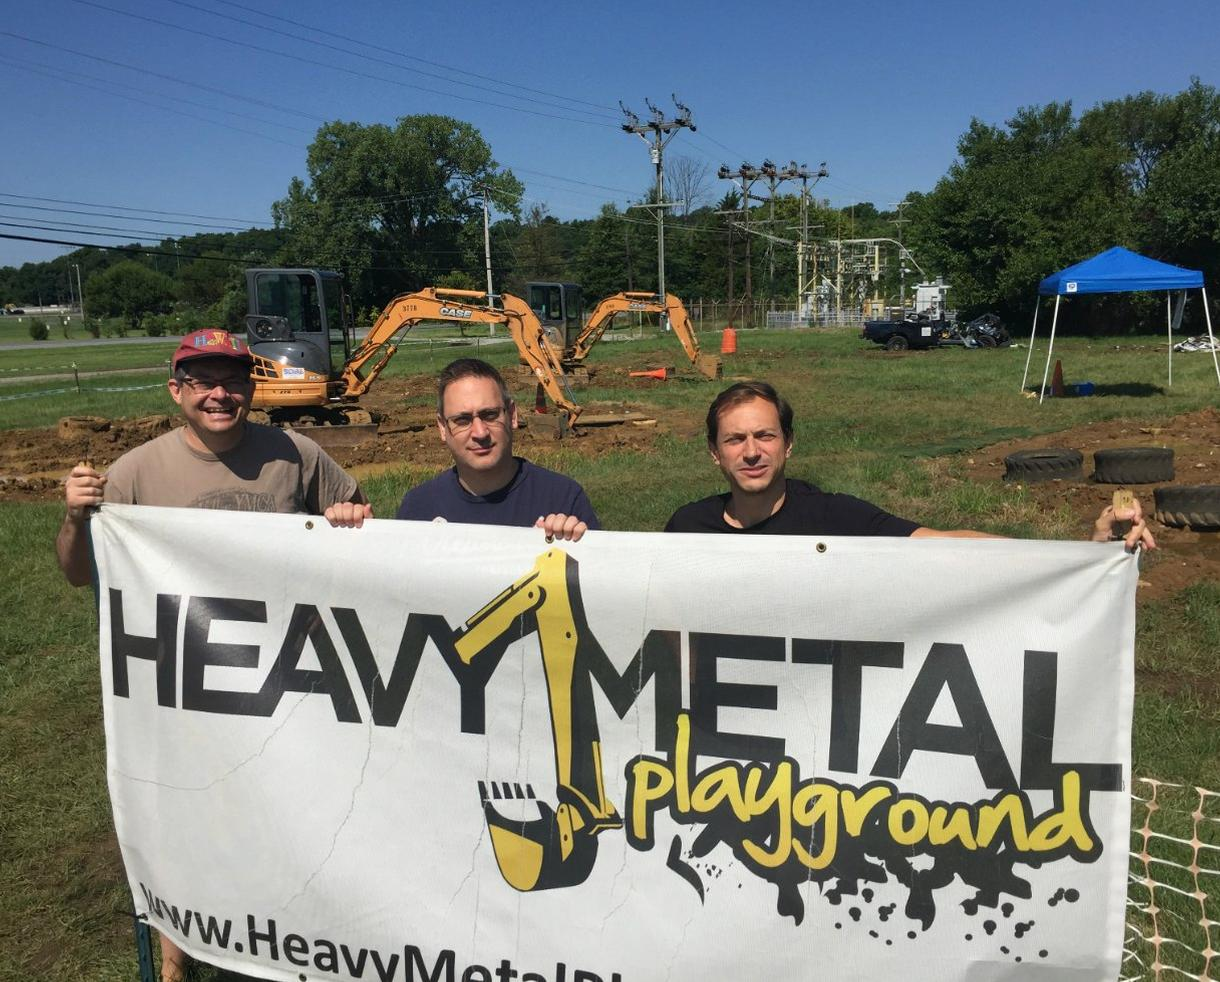 Heavy Metal Playground